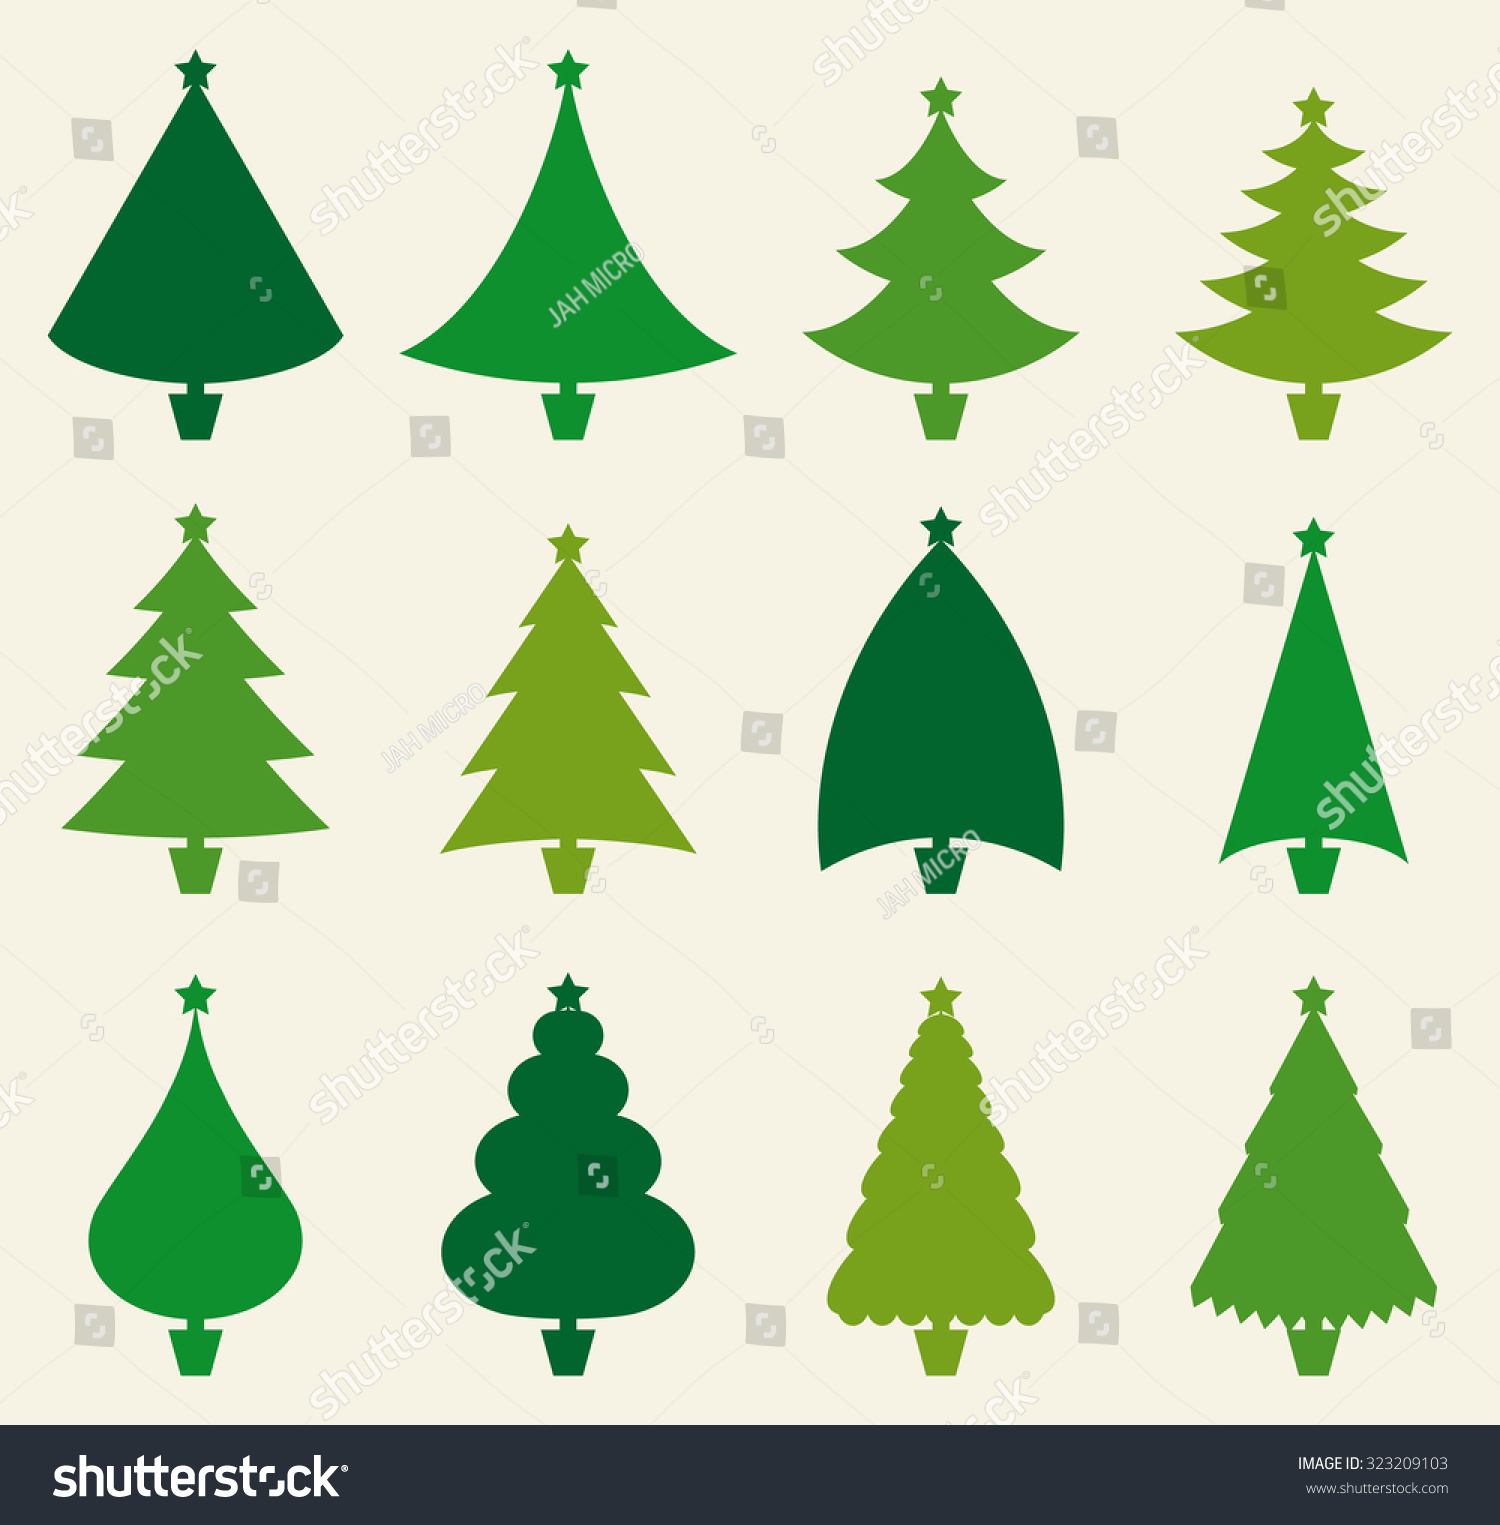 Christmas Tree Green Color Set Stock Vector 323209103 - Shutterstock